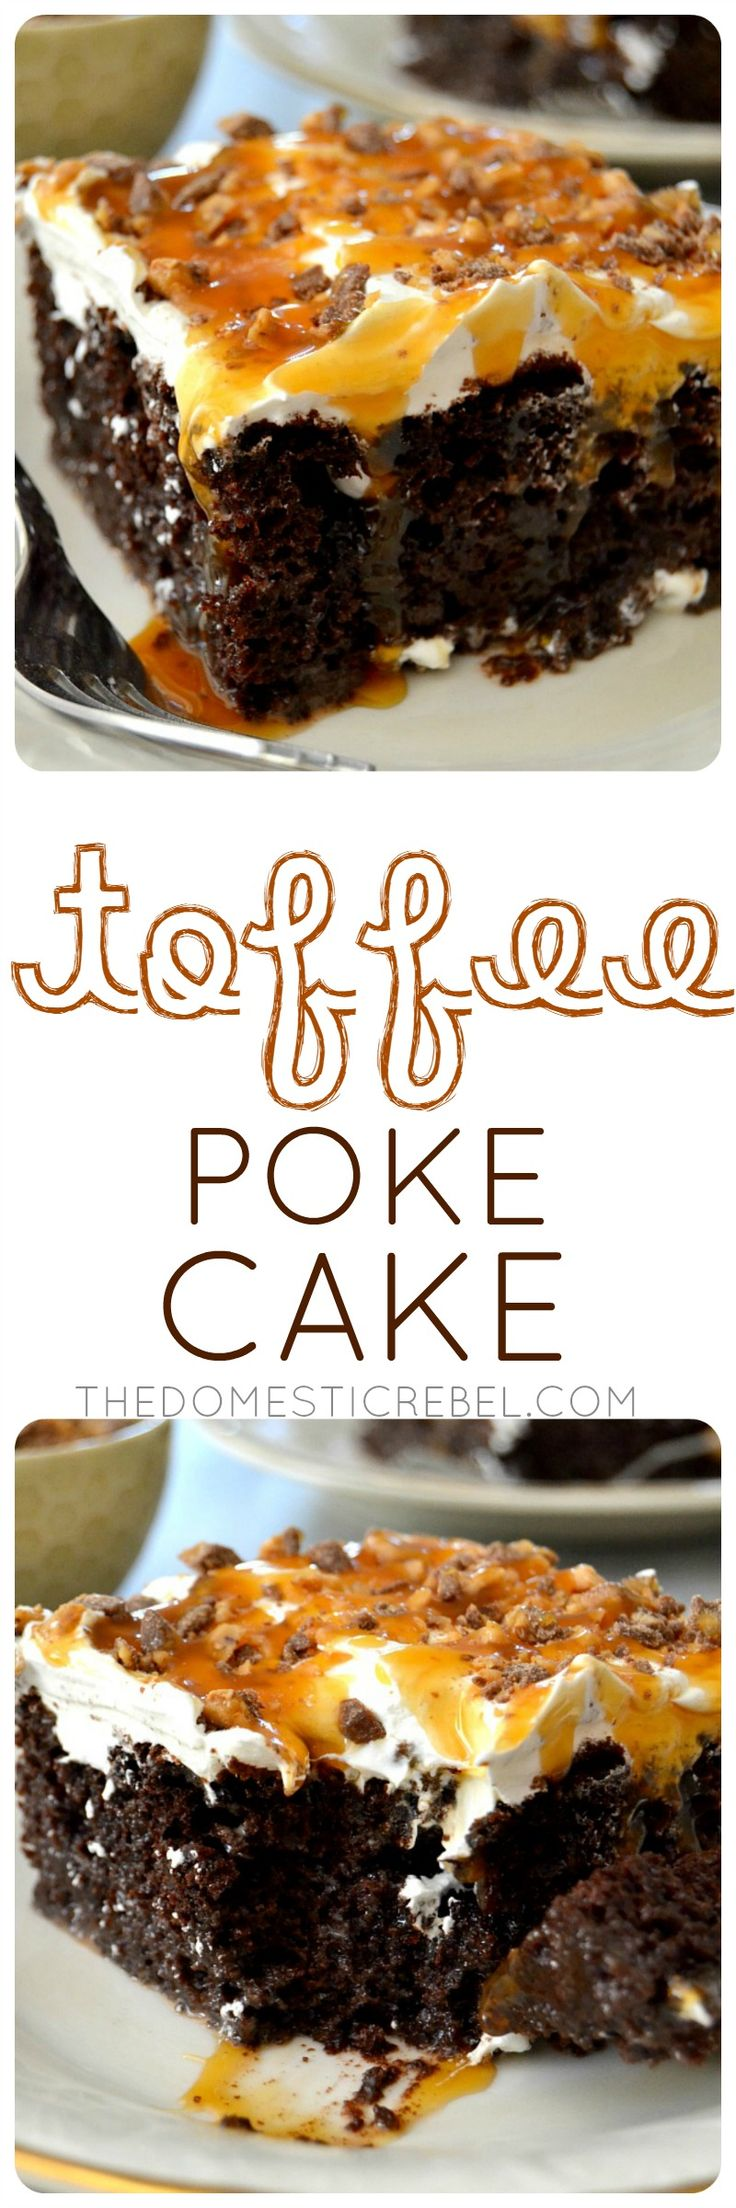 This Toffee Poke Cake is an easy, impressive dessert that pleases everyone! Rich chocolate, buttery caramel and crunchy toffee all comes together in this winning dessert!